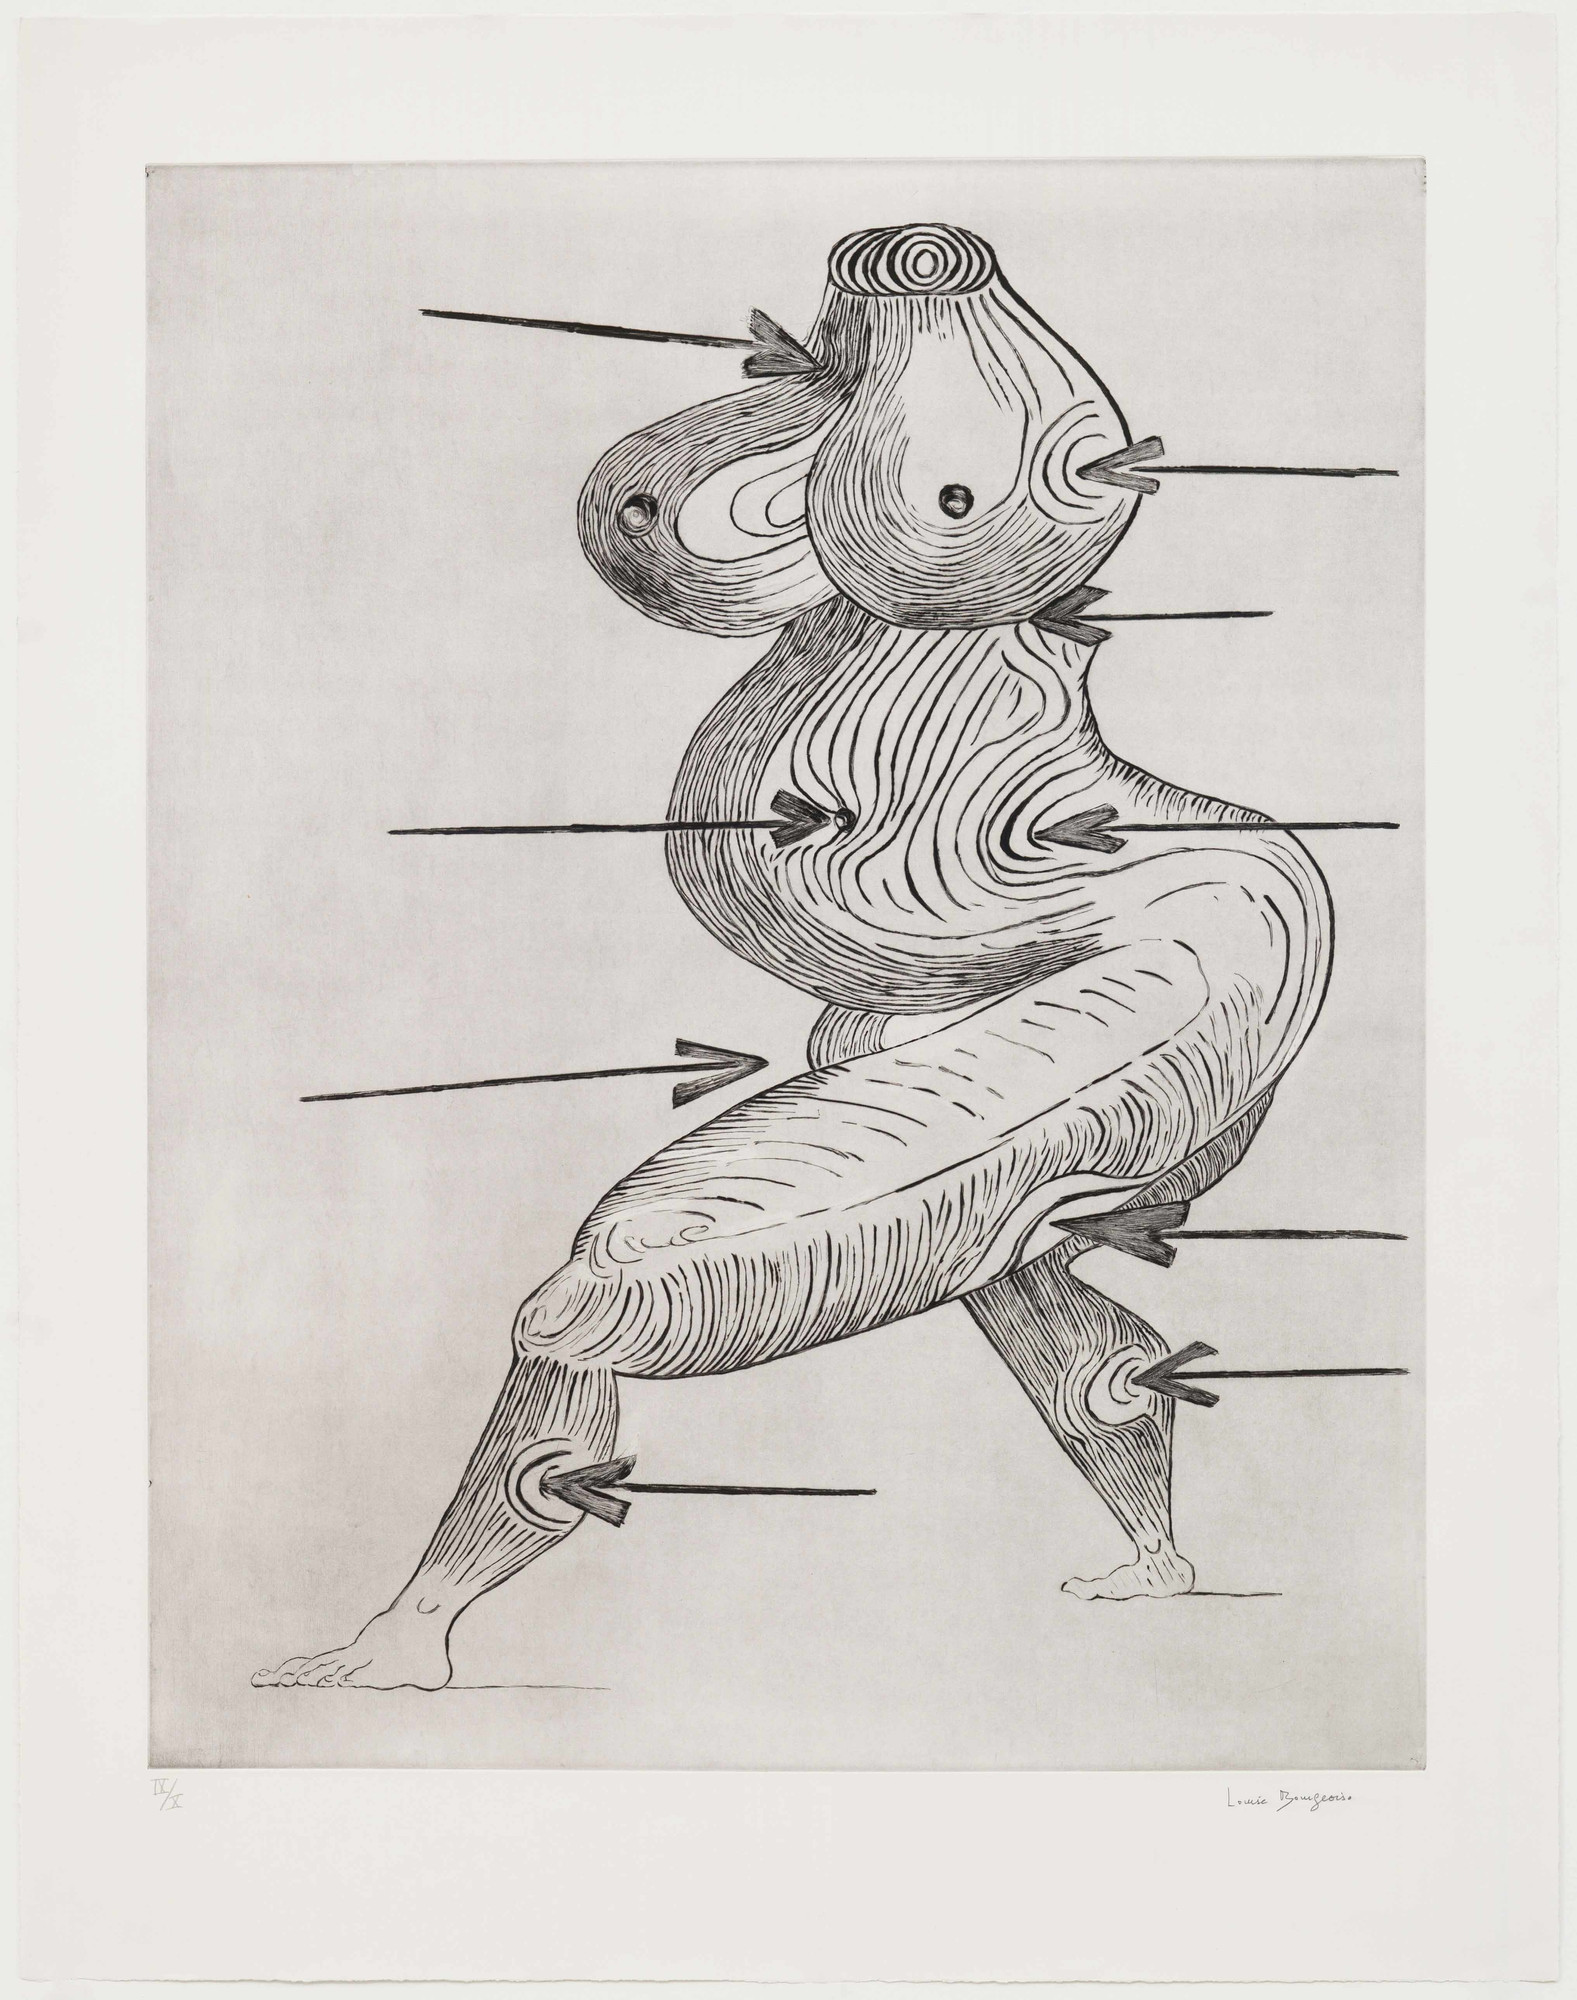 "Louise Bourgeois. Sainte Sébastienne. 1992. Drypoint, sheet: 47 7/16 x 37 1/8"" (120.5 x 94.3 cm). The Museum of Modern Art, New York. Gift of the artist. © 2017 The Easton Foundation/Licensed by VAGA, NY"